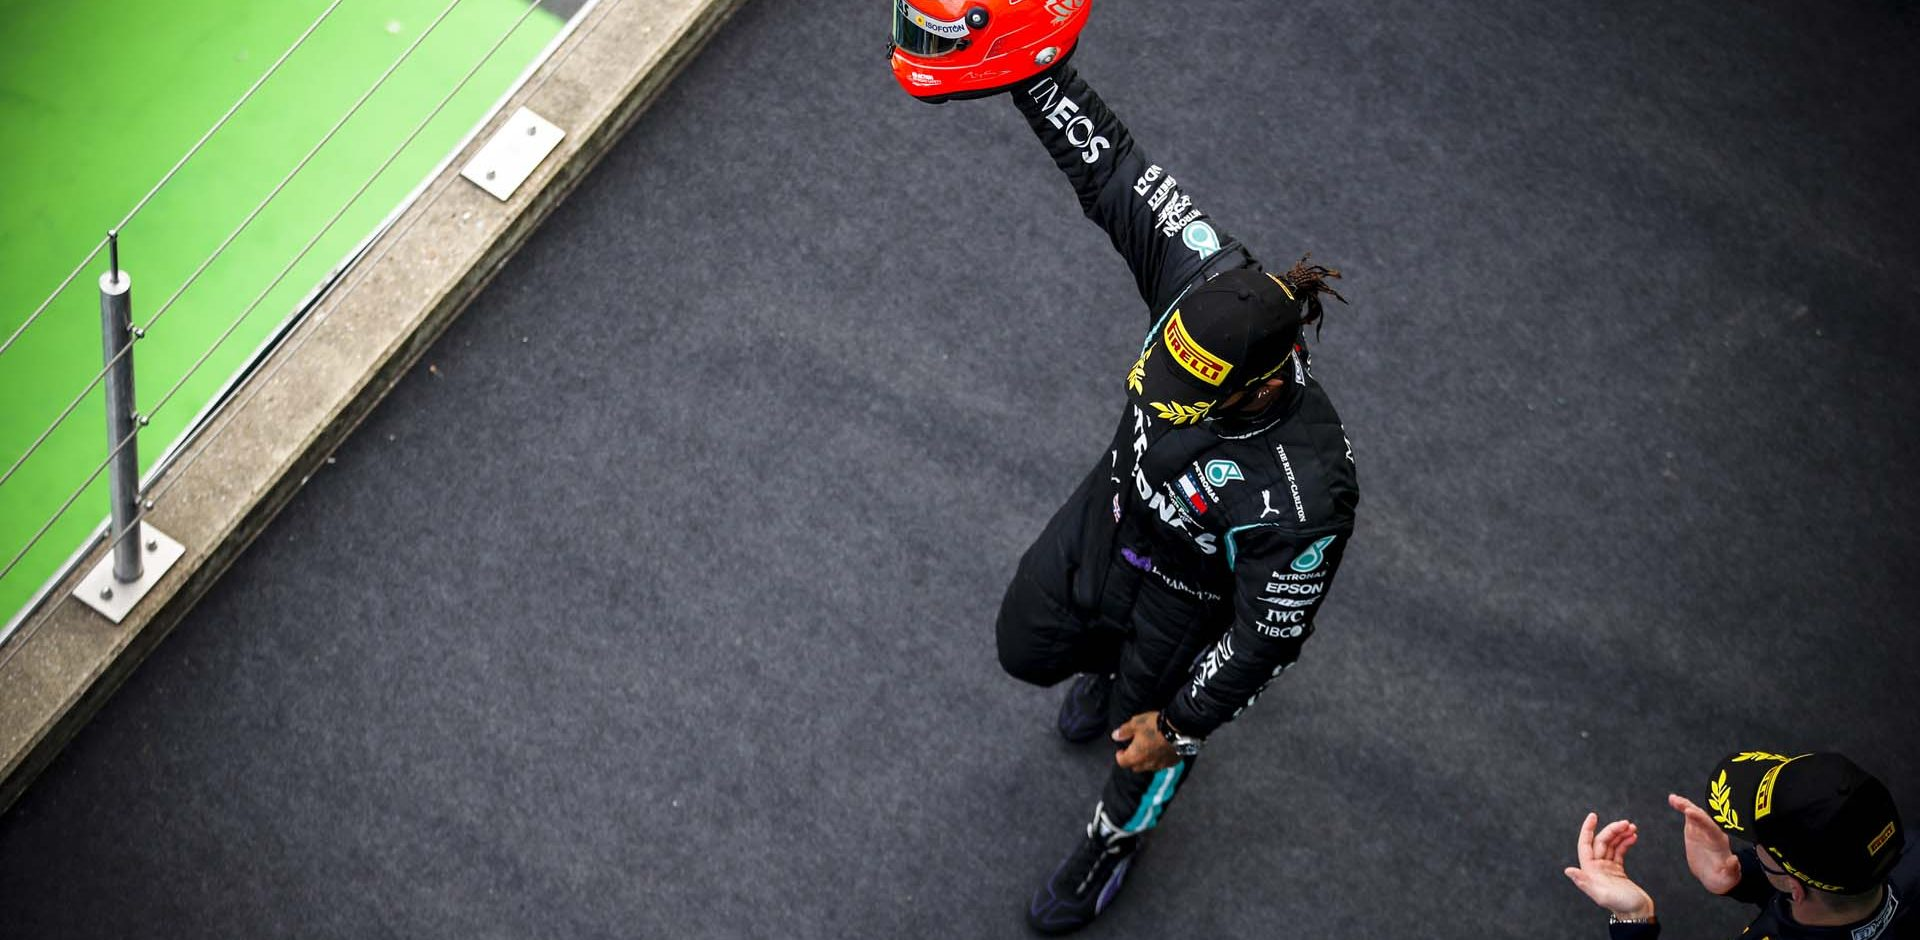 NüRBURGRING, GERMANY - OCTOBER 11: Lewis Hamilton, Mercedes-AMG Petronas F1, 1st position, arrives on the podium with the helmet of Michael Schumacher that was presented to him by Mick Schumacher during the Eifel GP at Nürburgring on Sunday October 11, 2020, Germany. (Photo by Zak Mauger / LAT Images)